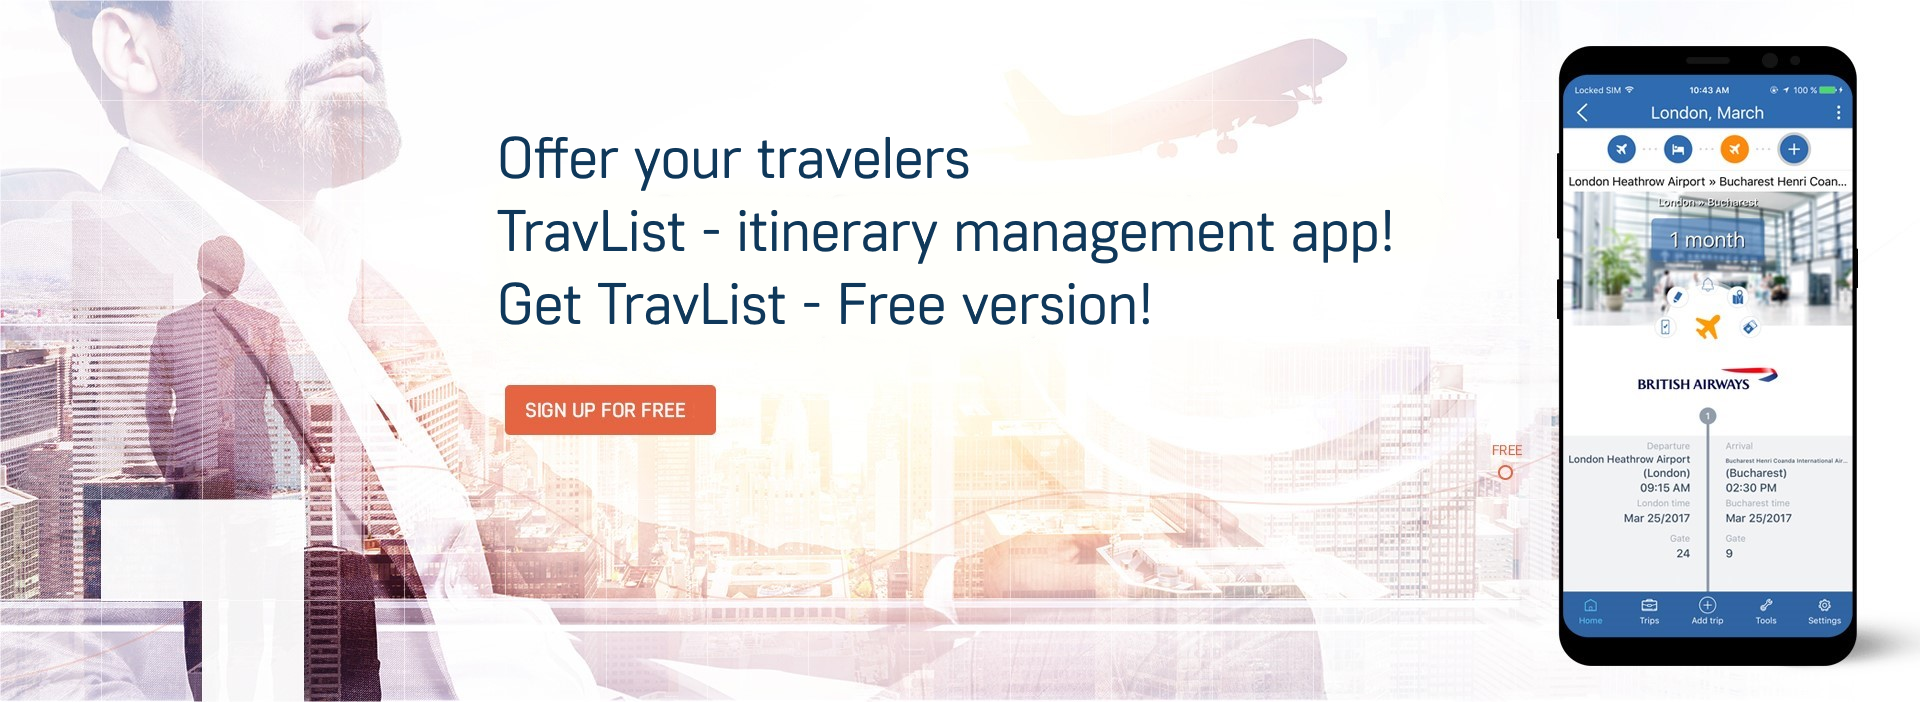 TravList - Itinerary Management Mobile App